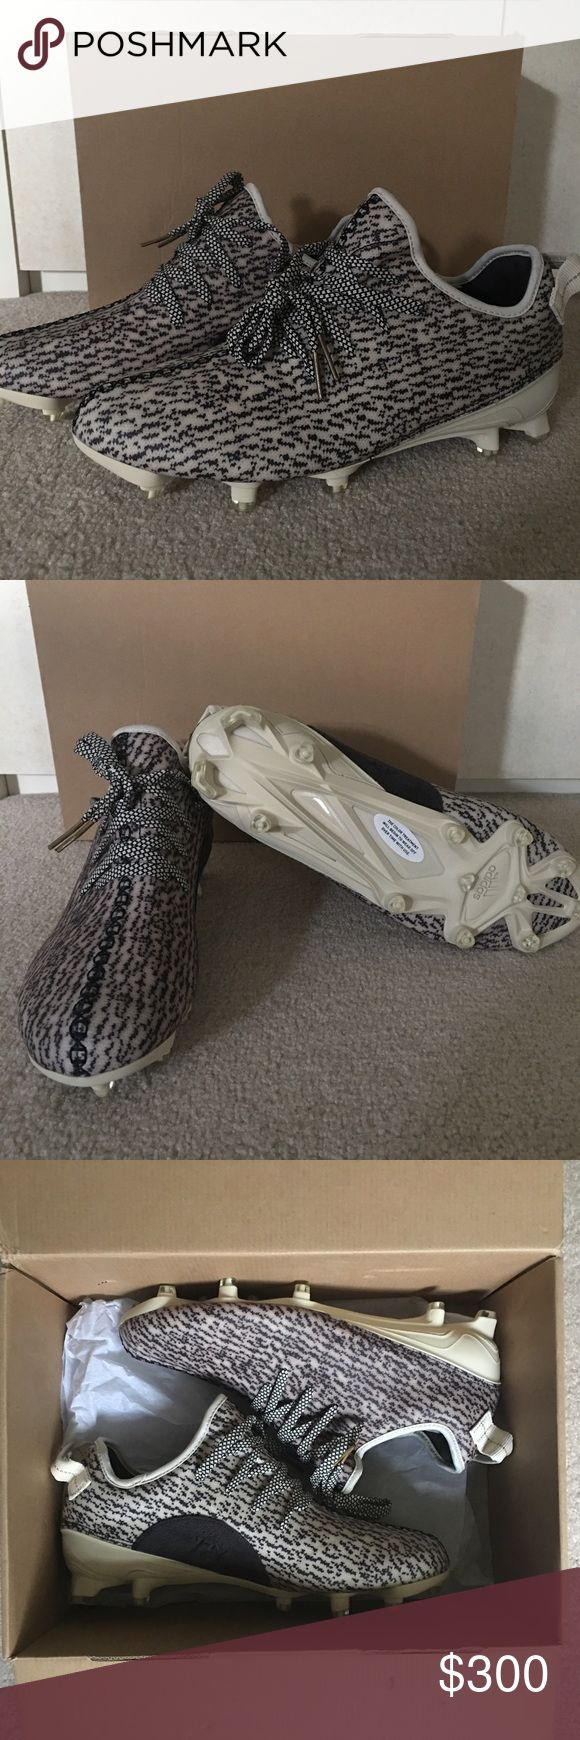 "Men's Yeezy 350 Cleats ADIDAS YEEZY BOOST 350 ""TURTLE DOVE"" CLEAT  Style Code: B42410 - LIMITED EDITION - Released 9-15-2016 for $250 + shipping. Just looking to recoup my cost.  Color: Turtle Dove; Core White/Core Black/Metallic Gold  Size: US Men's 10 and 11 available  100% AUTHENTIC - BRAND NEW (DEADSTOCK)  Shipped Double Boxed Yeezy Shoes Athletic Shoes"